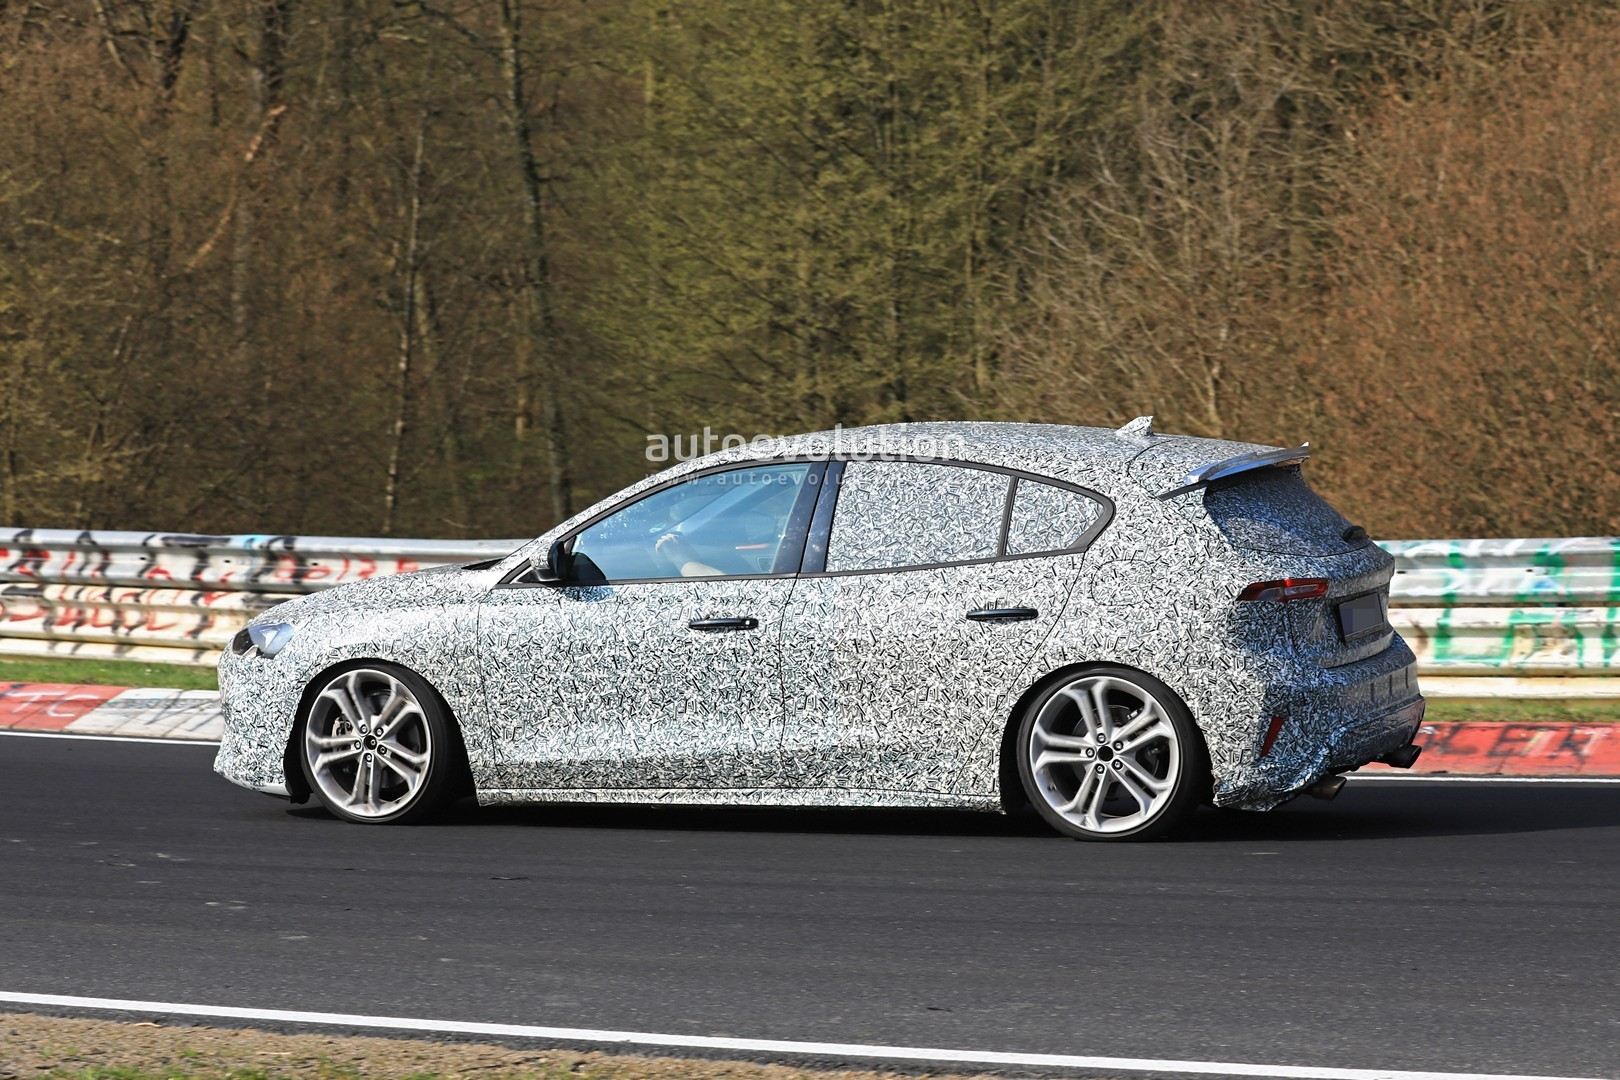 Focus St Exhaust >> Spyshots: 2020 Ford Focus ST Hits Nurburgring, 8-Speed Automatic Likely - autoevolution